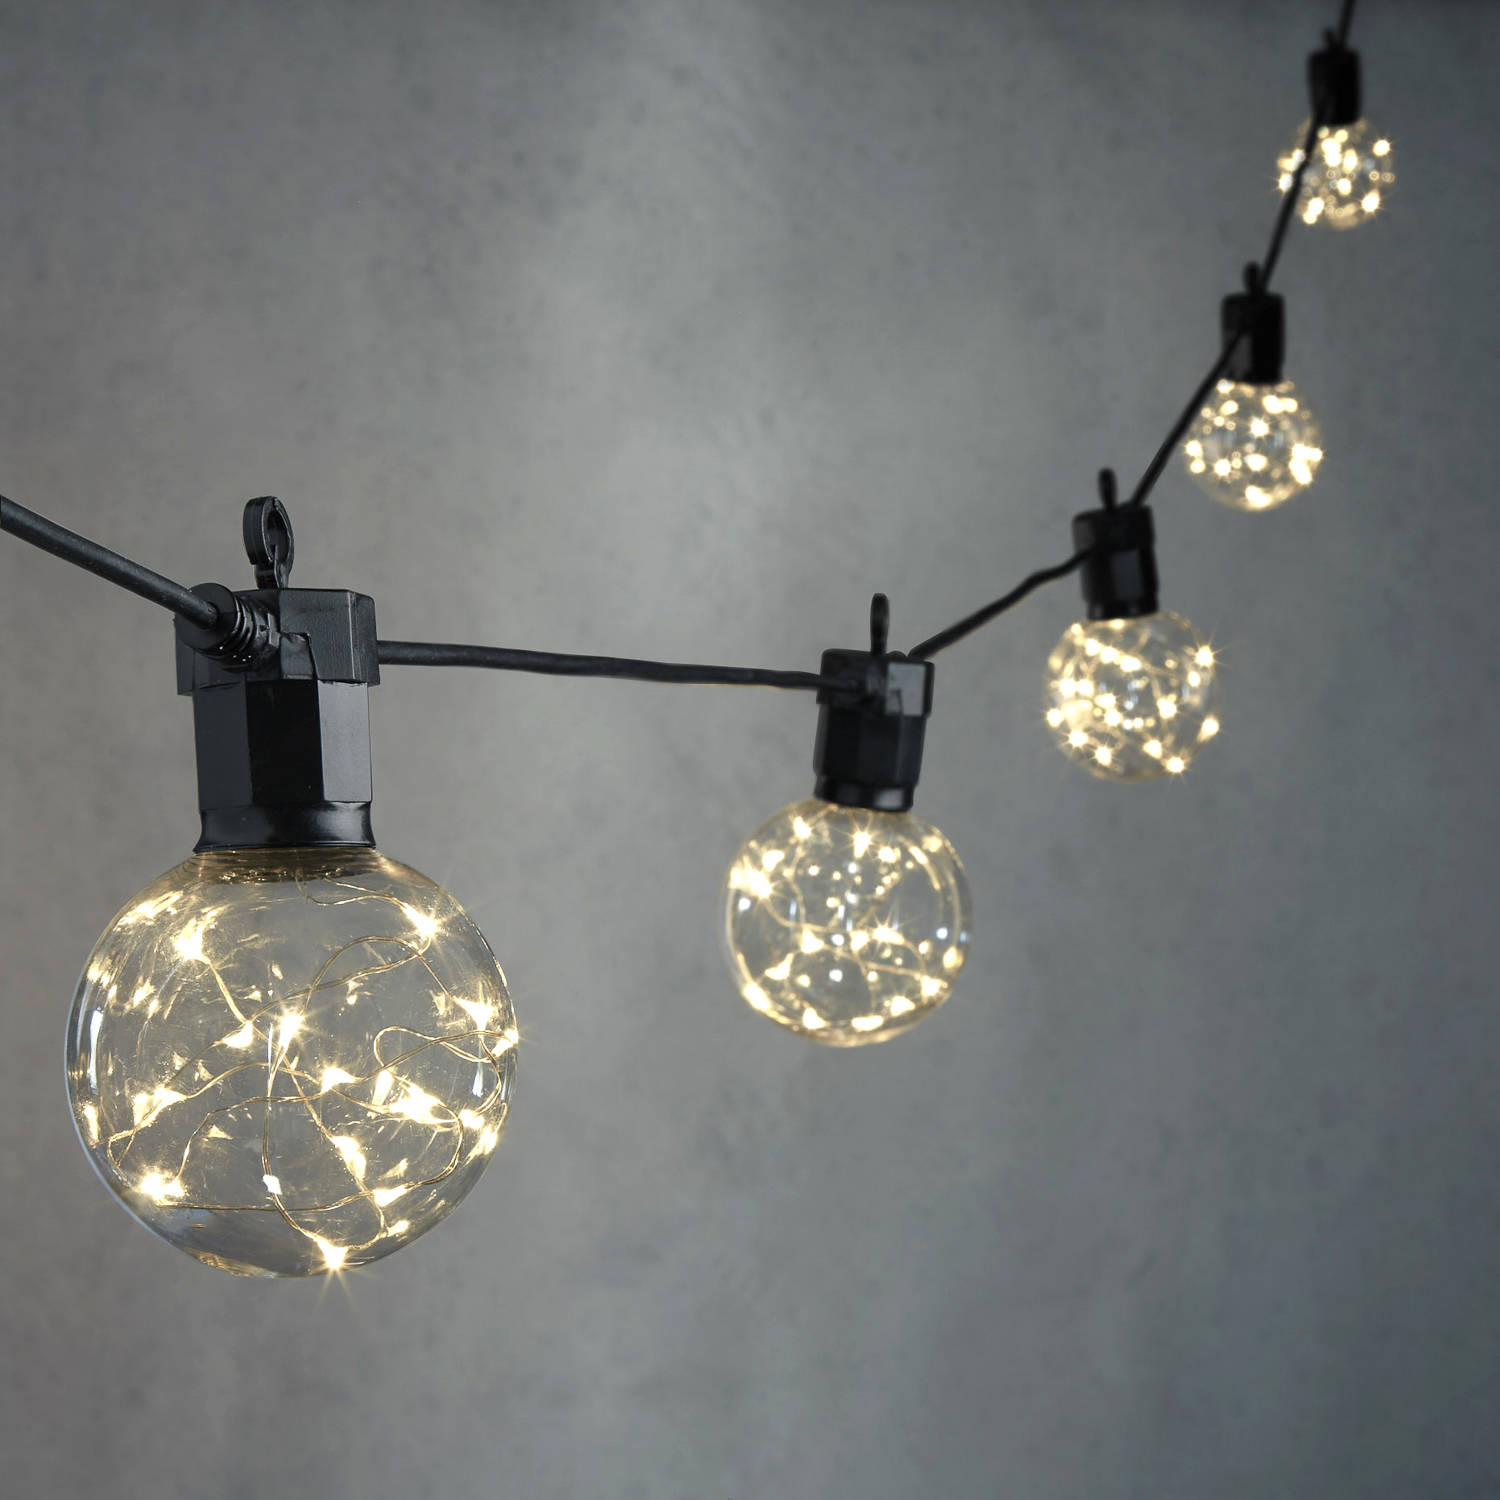 String Lights With Wire : Lights.com String Lights Decorative String Lights Celestial Globe String Lights with ...